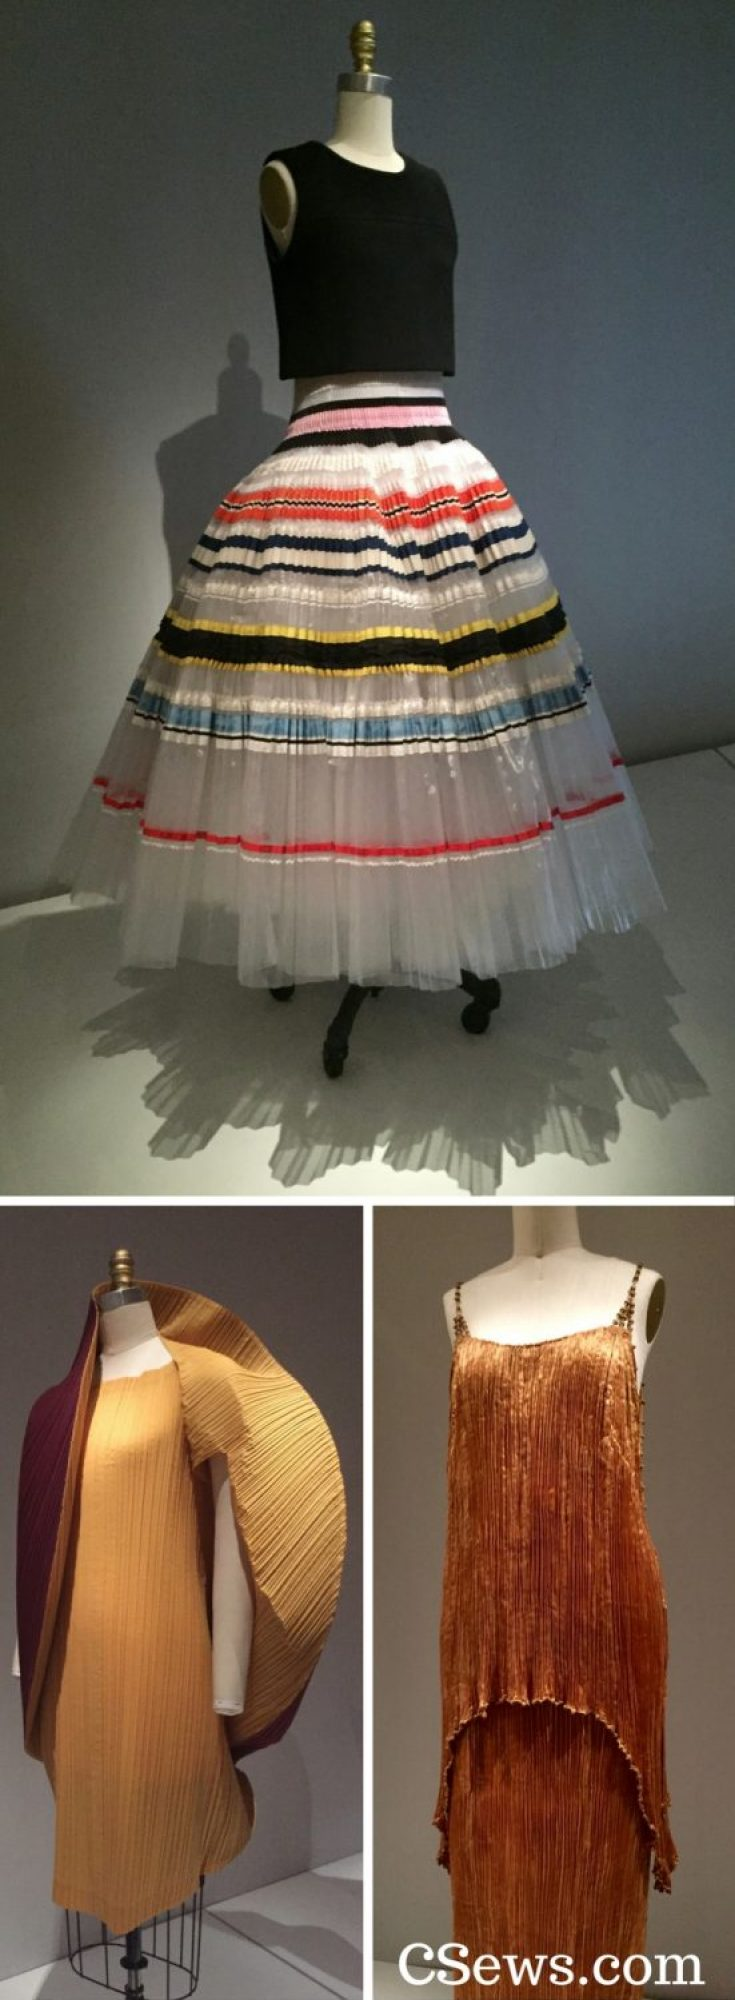 Manus x Machina - pleated garments - House of Dior, Issey Miyake and Fortuny - pleats